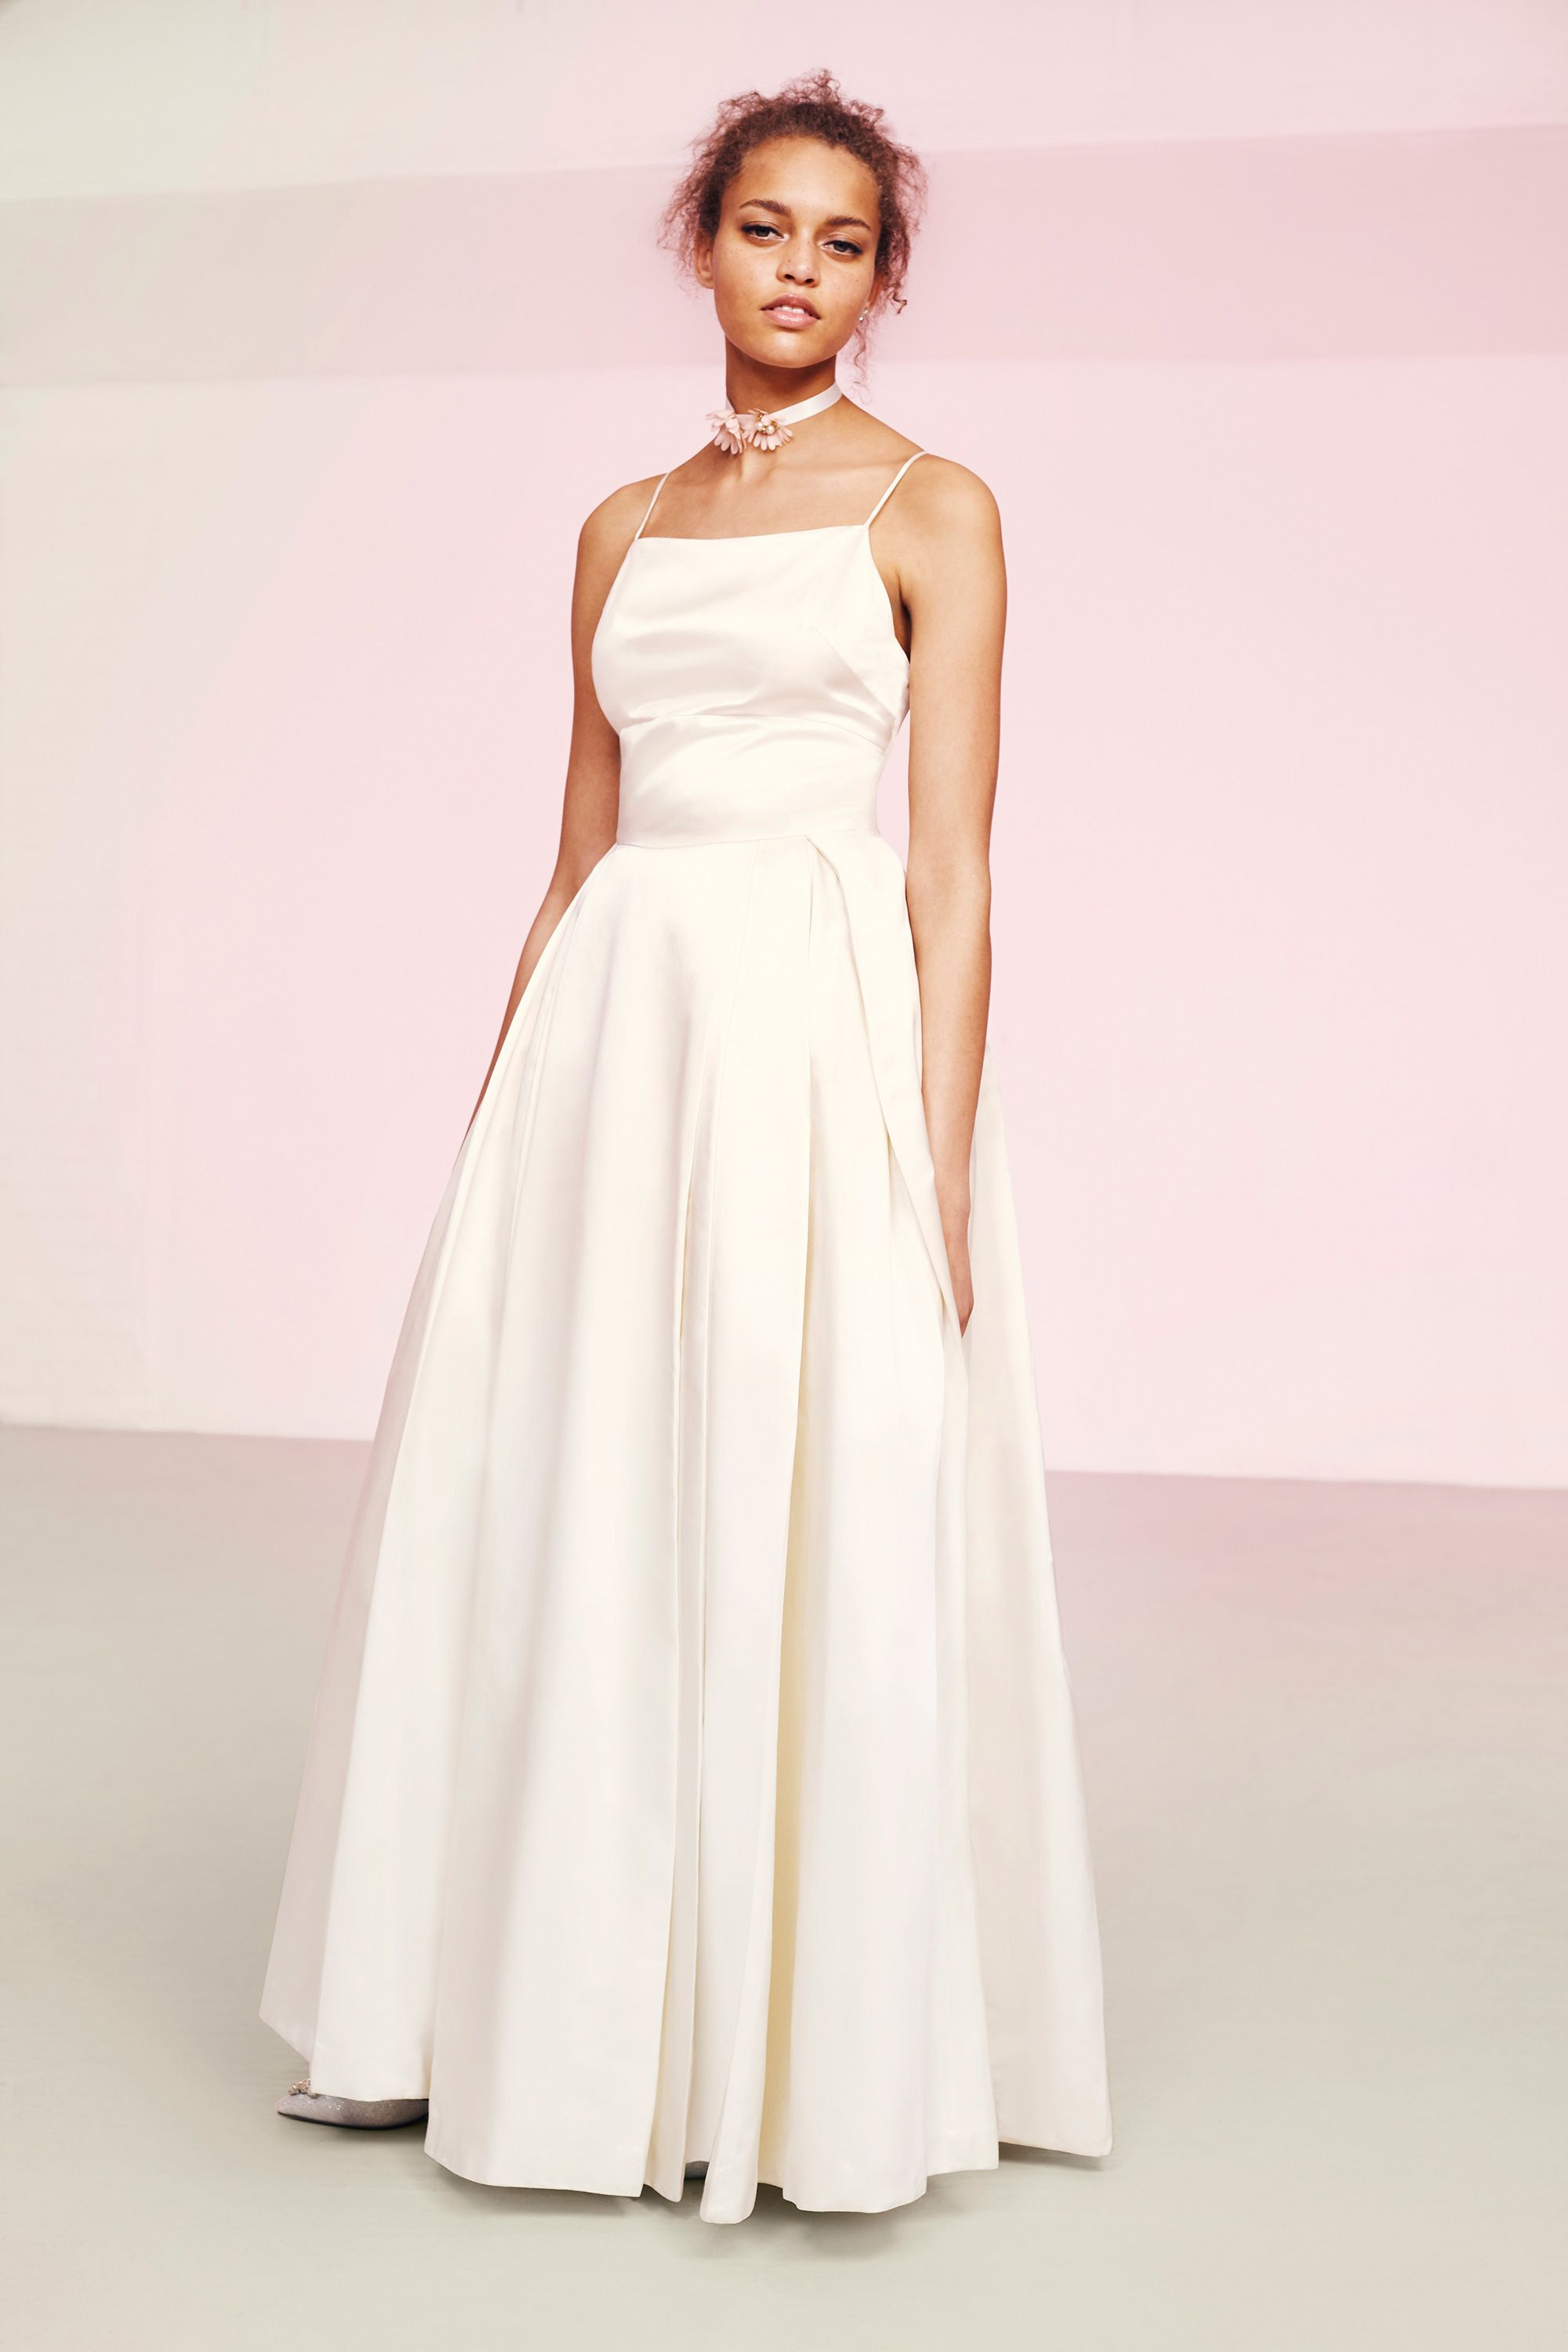 ASOS launches debut bridal collection